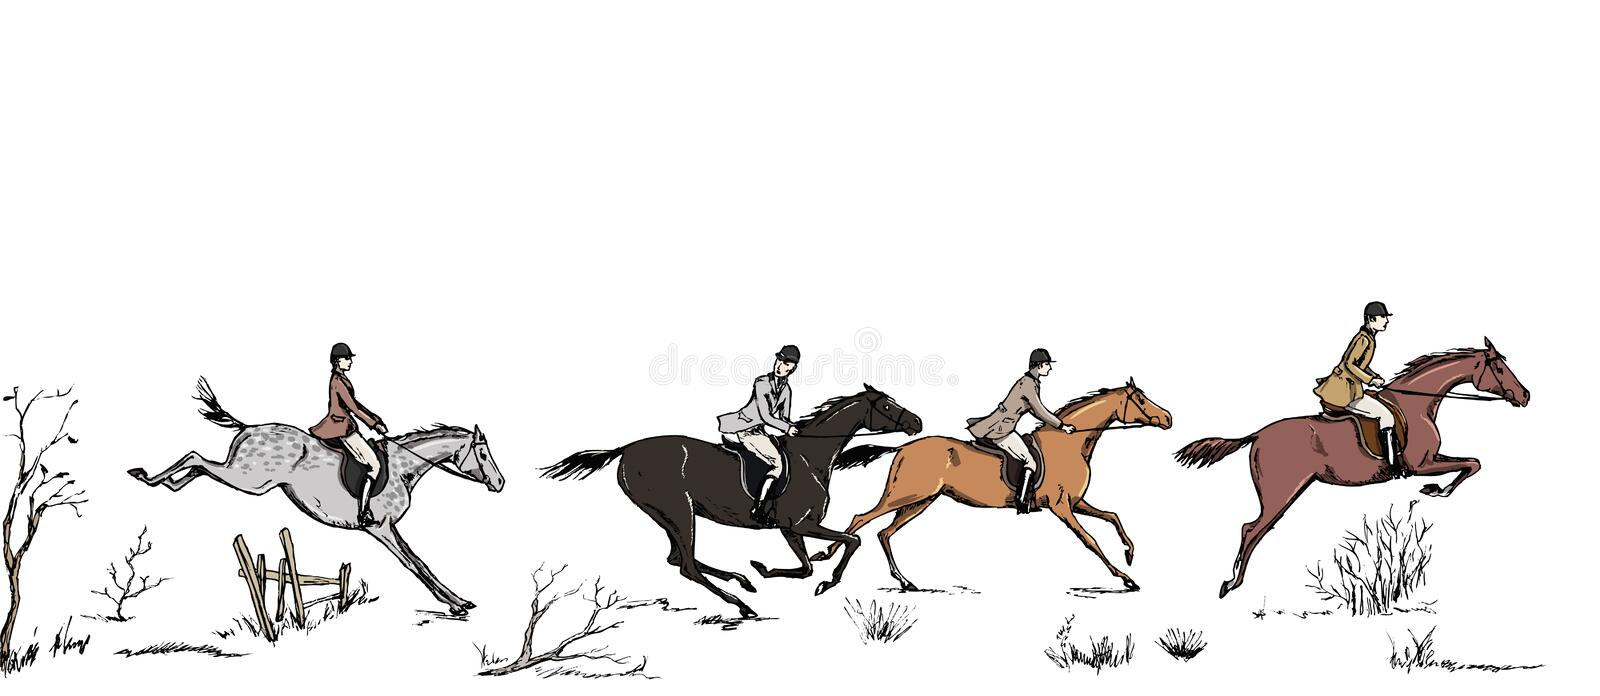 Equestrian sport fox hunting with horse riders english style on landscape. England steeplechase tradition frame or border. Hand drawing vintage art pattern on vector illustration